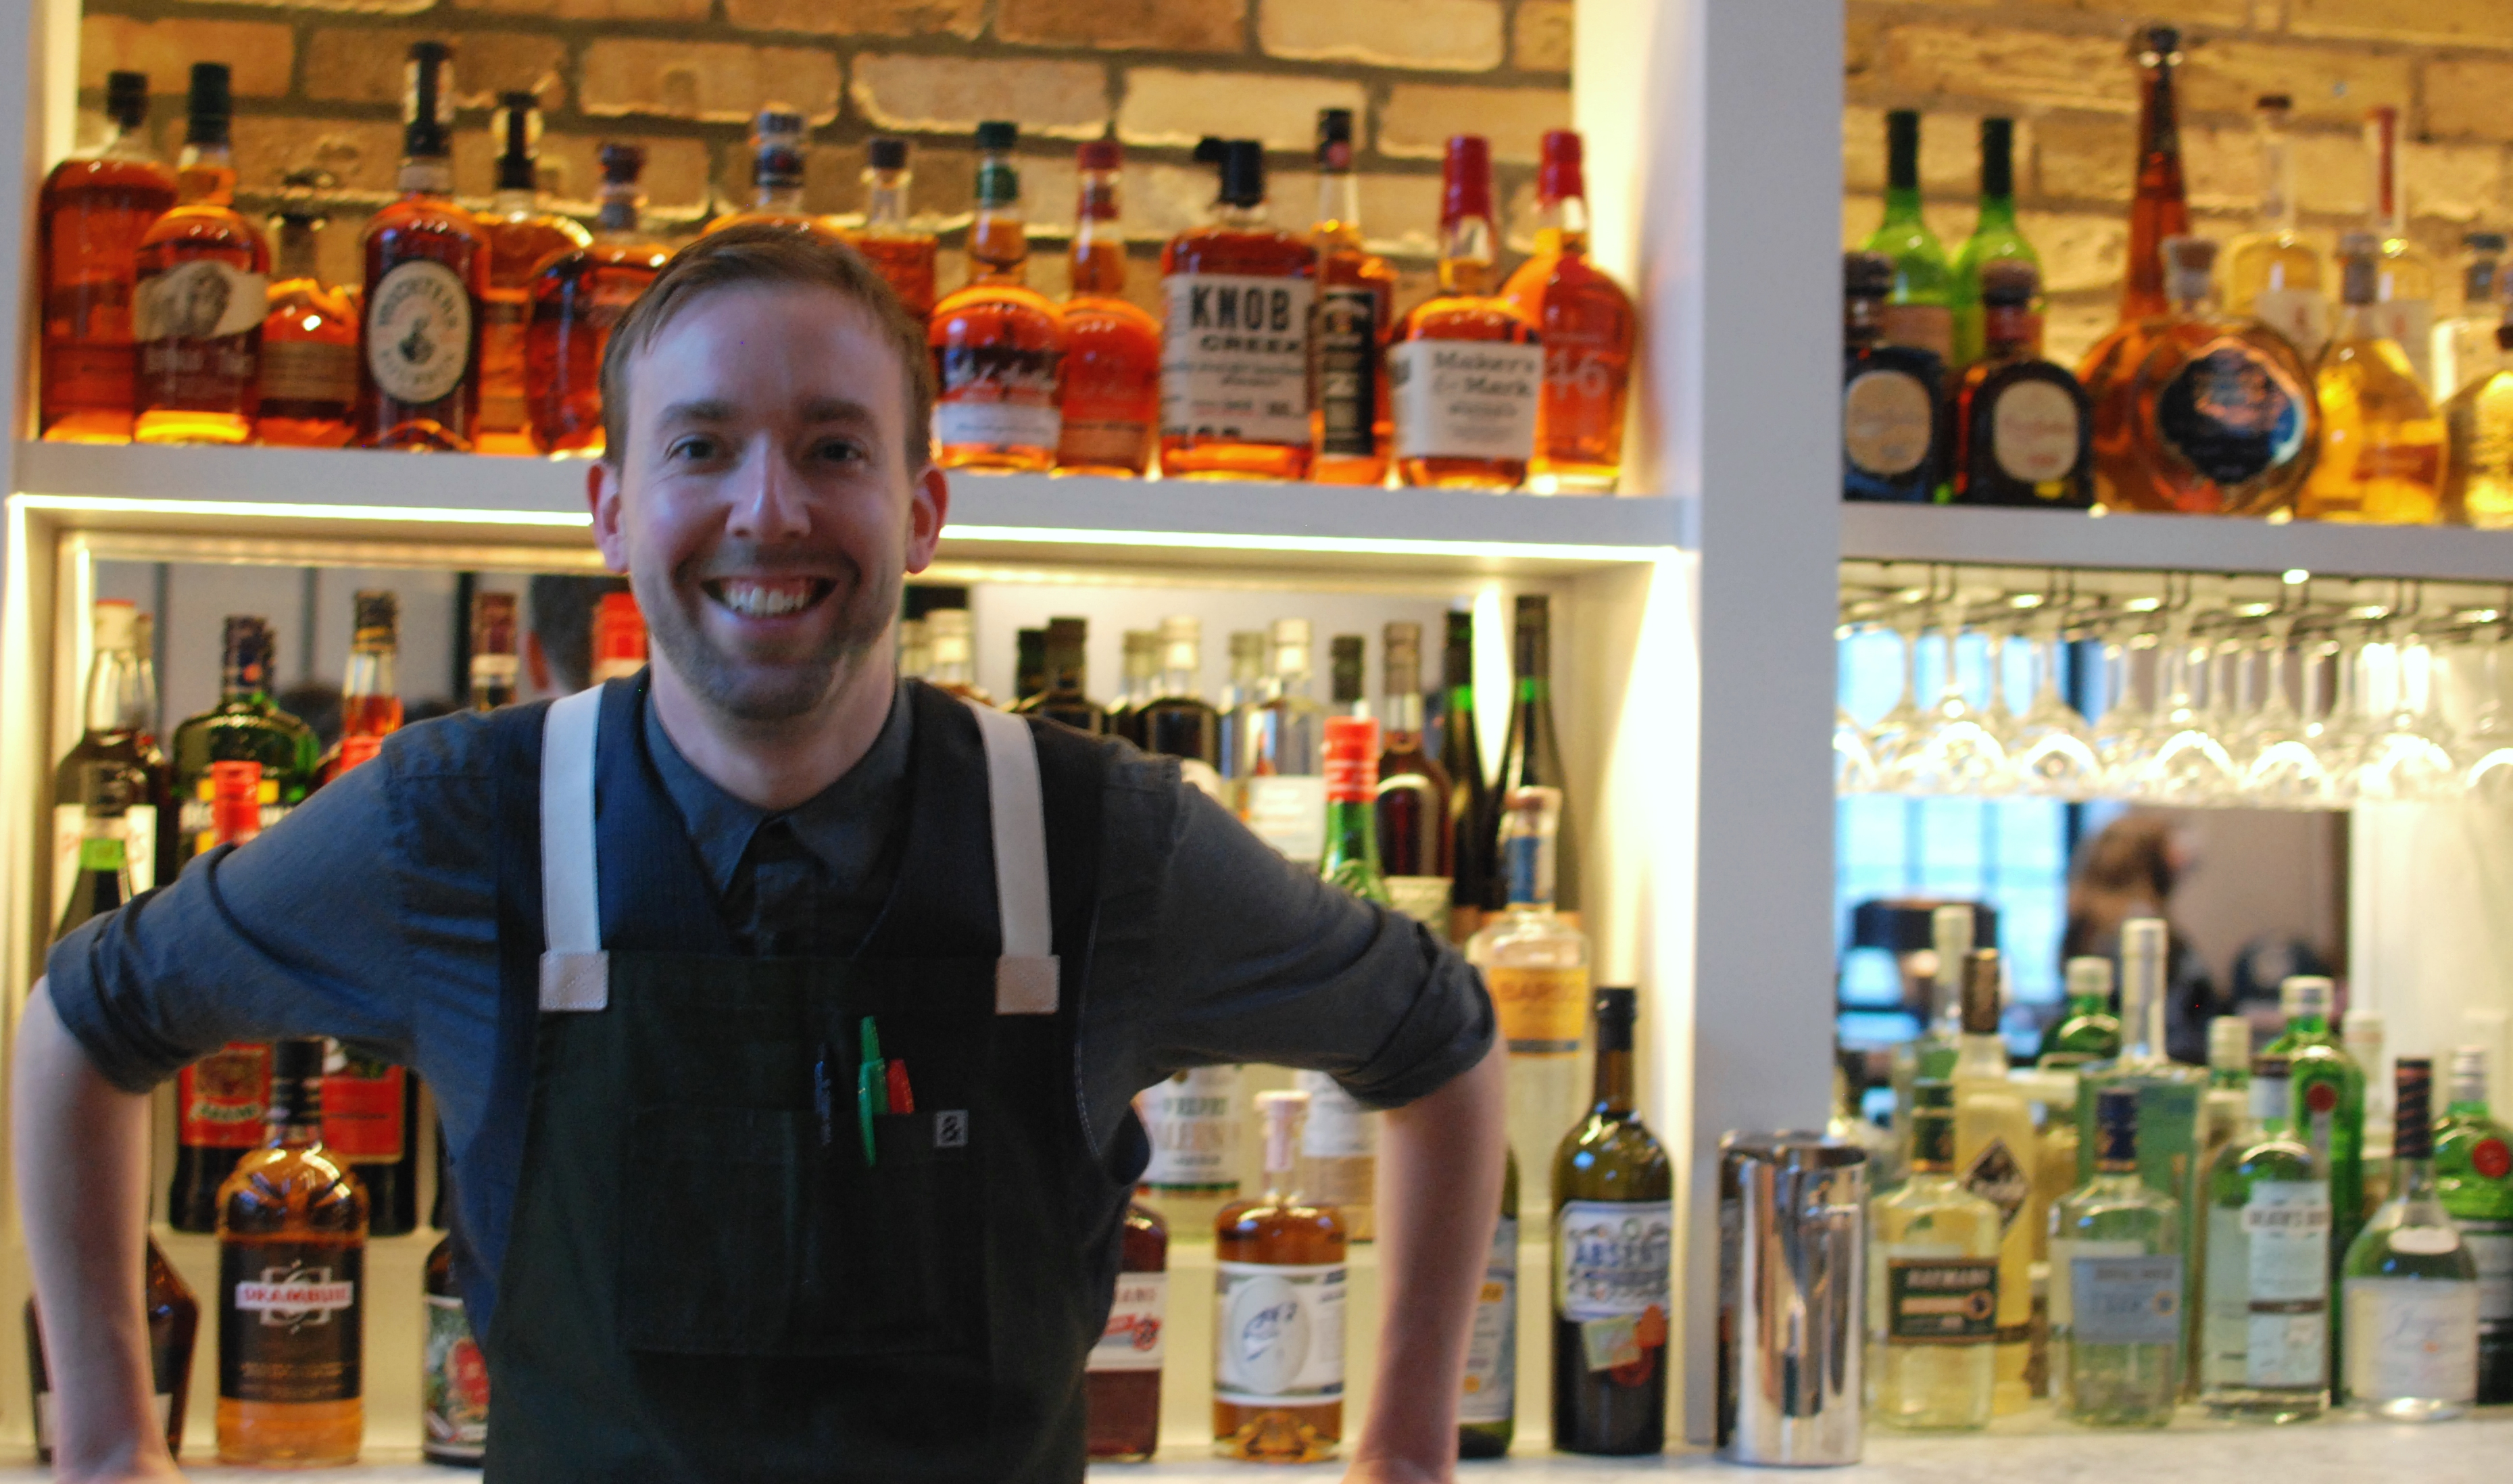 Robb Jones in an apron smiling behind a bar